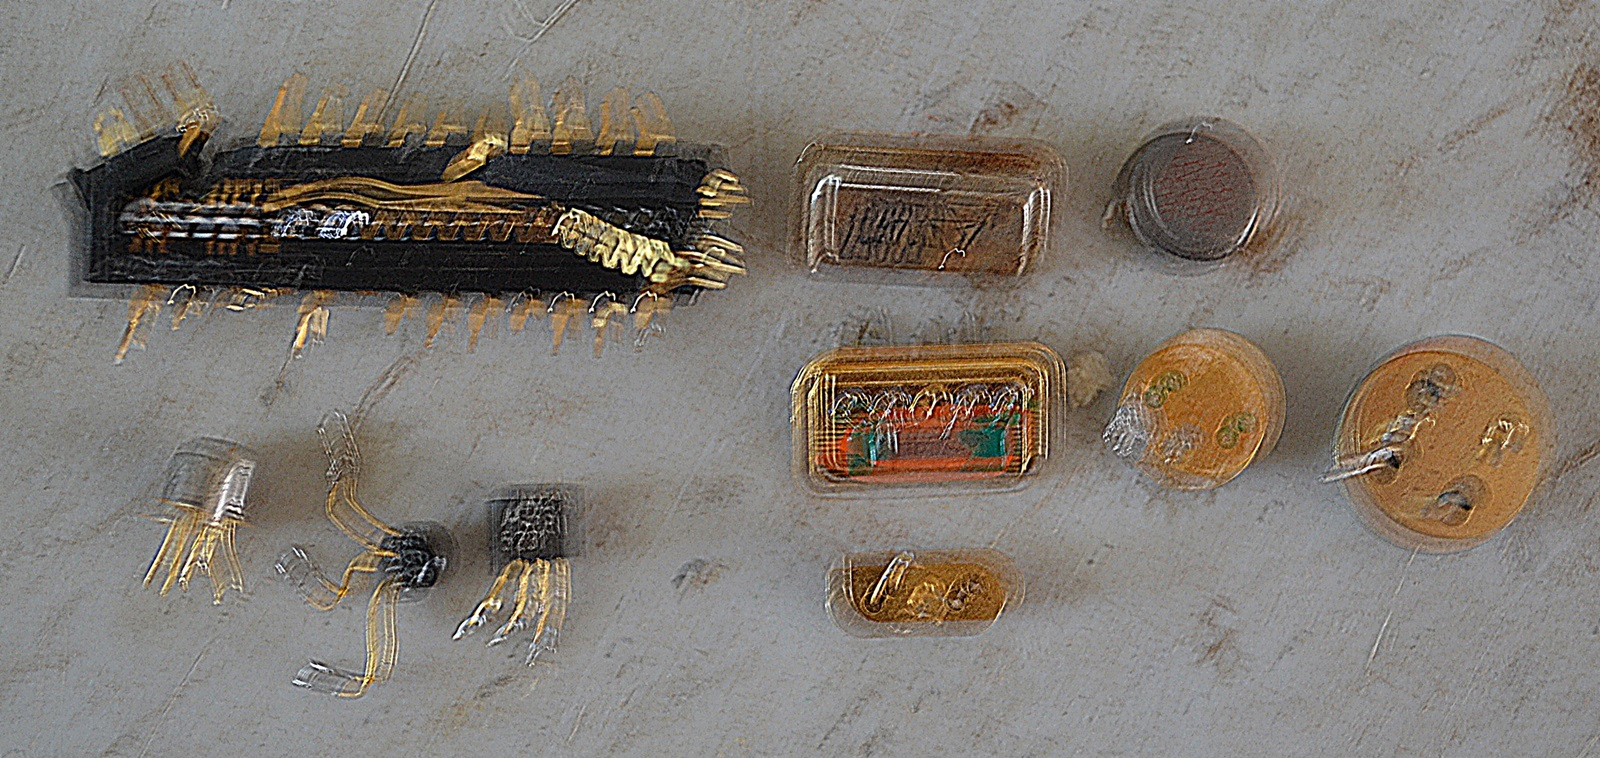 Picking Crystal Oscillators Off Boards Scrap Metal Forum Details About 1 Lb Cell Phone Circuit Gold Recovery Ii Click Image For Larger Version Name E Waste 009 Views